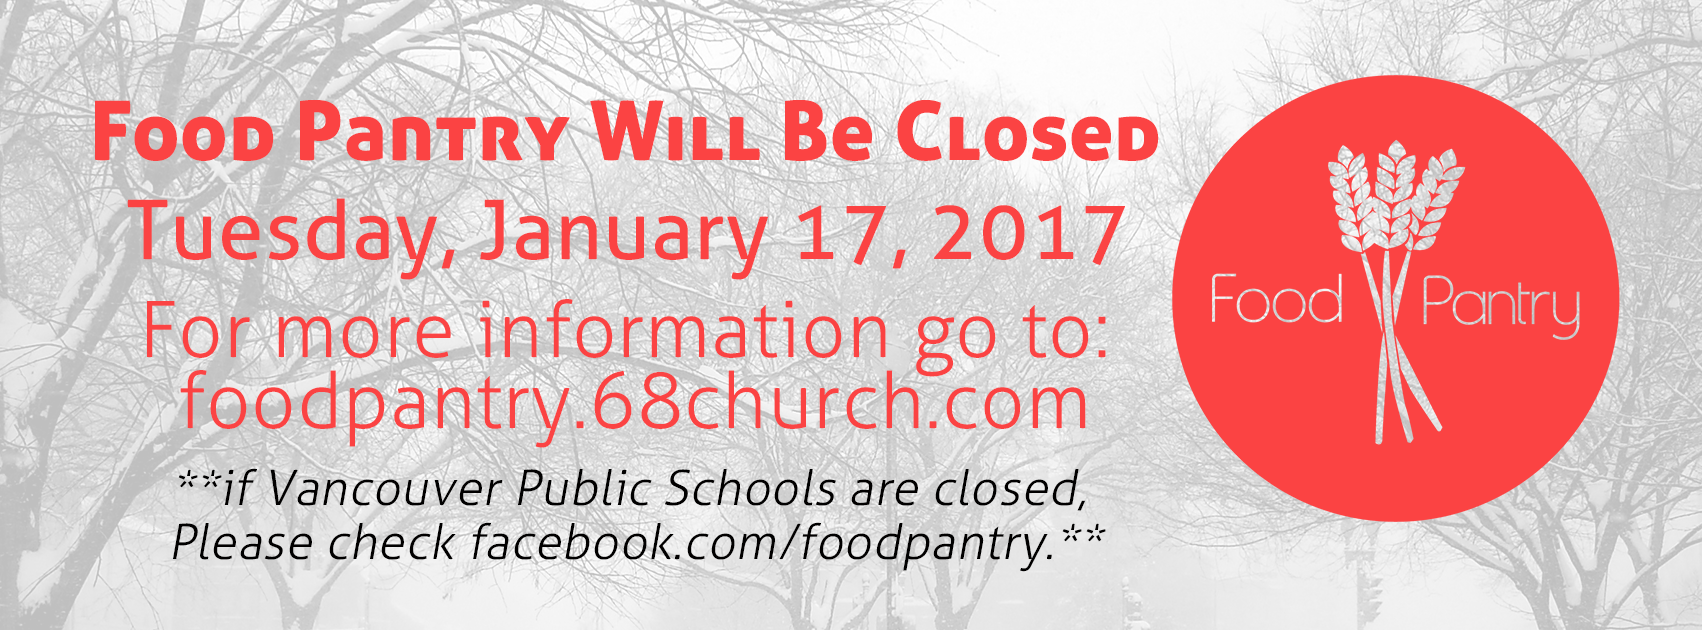 SixEight Food Pantry Will Be Closed, Tuesday, January 17, 2017